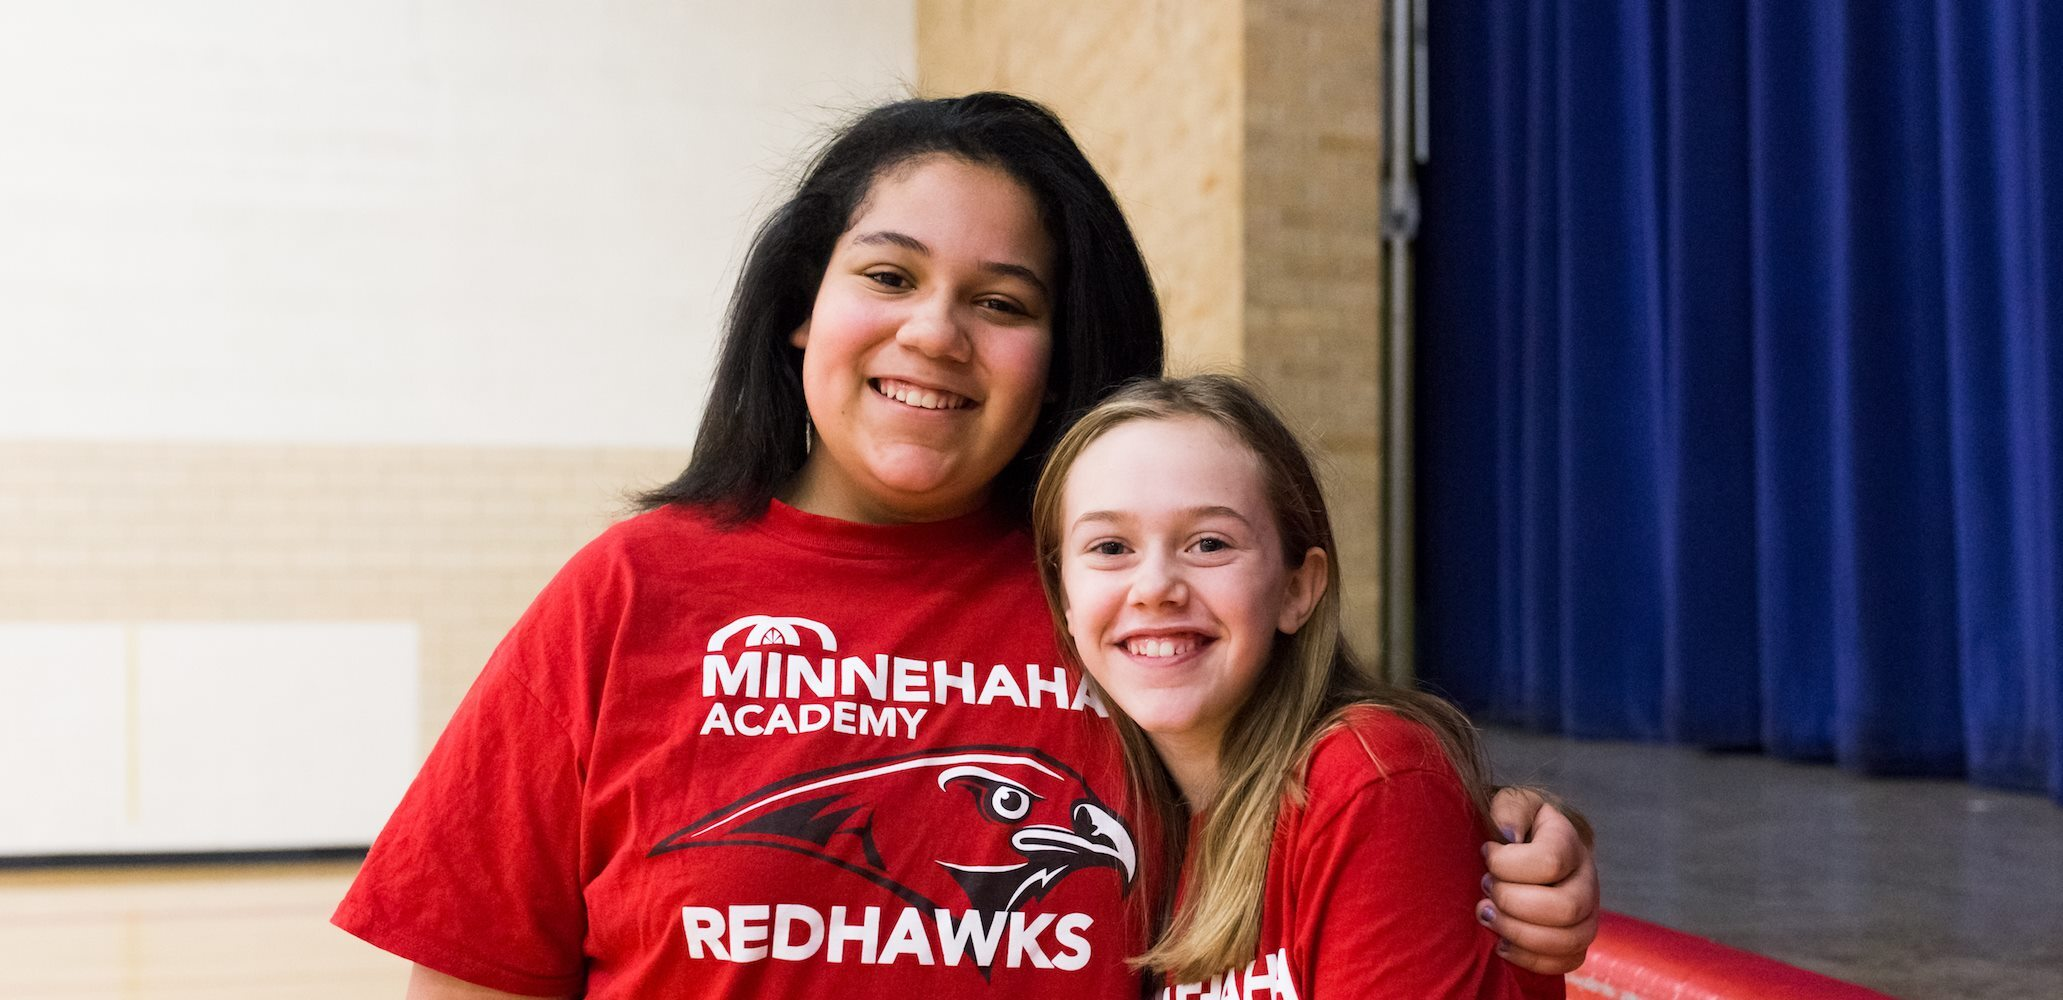 Minnehaha Academy Lower & Middle School Photo